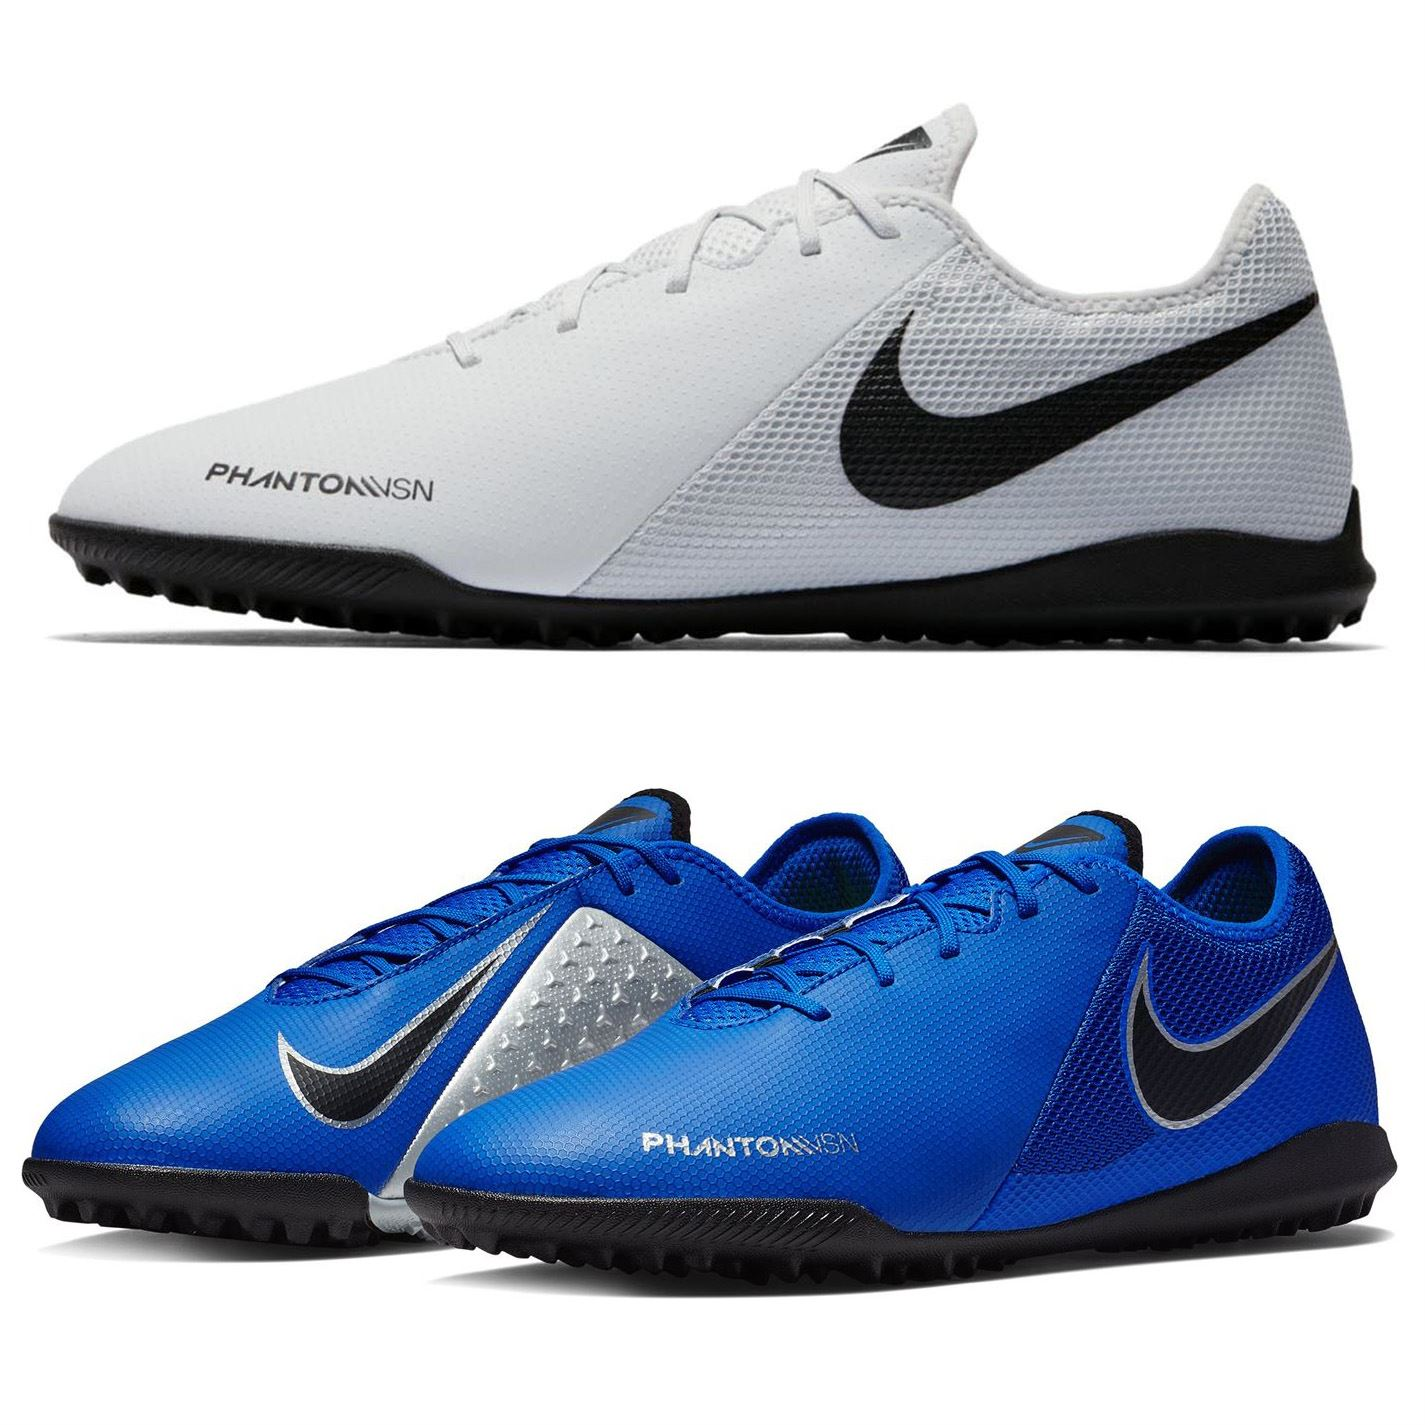 reputable site dfb18 e097f Details about Nike Phantom Vision Gato X Astro Turf Football Trainers Mens  Soccer Shoe Sneaker